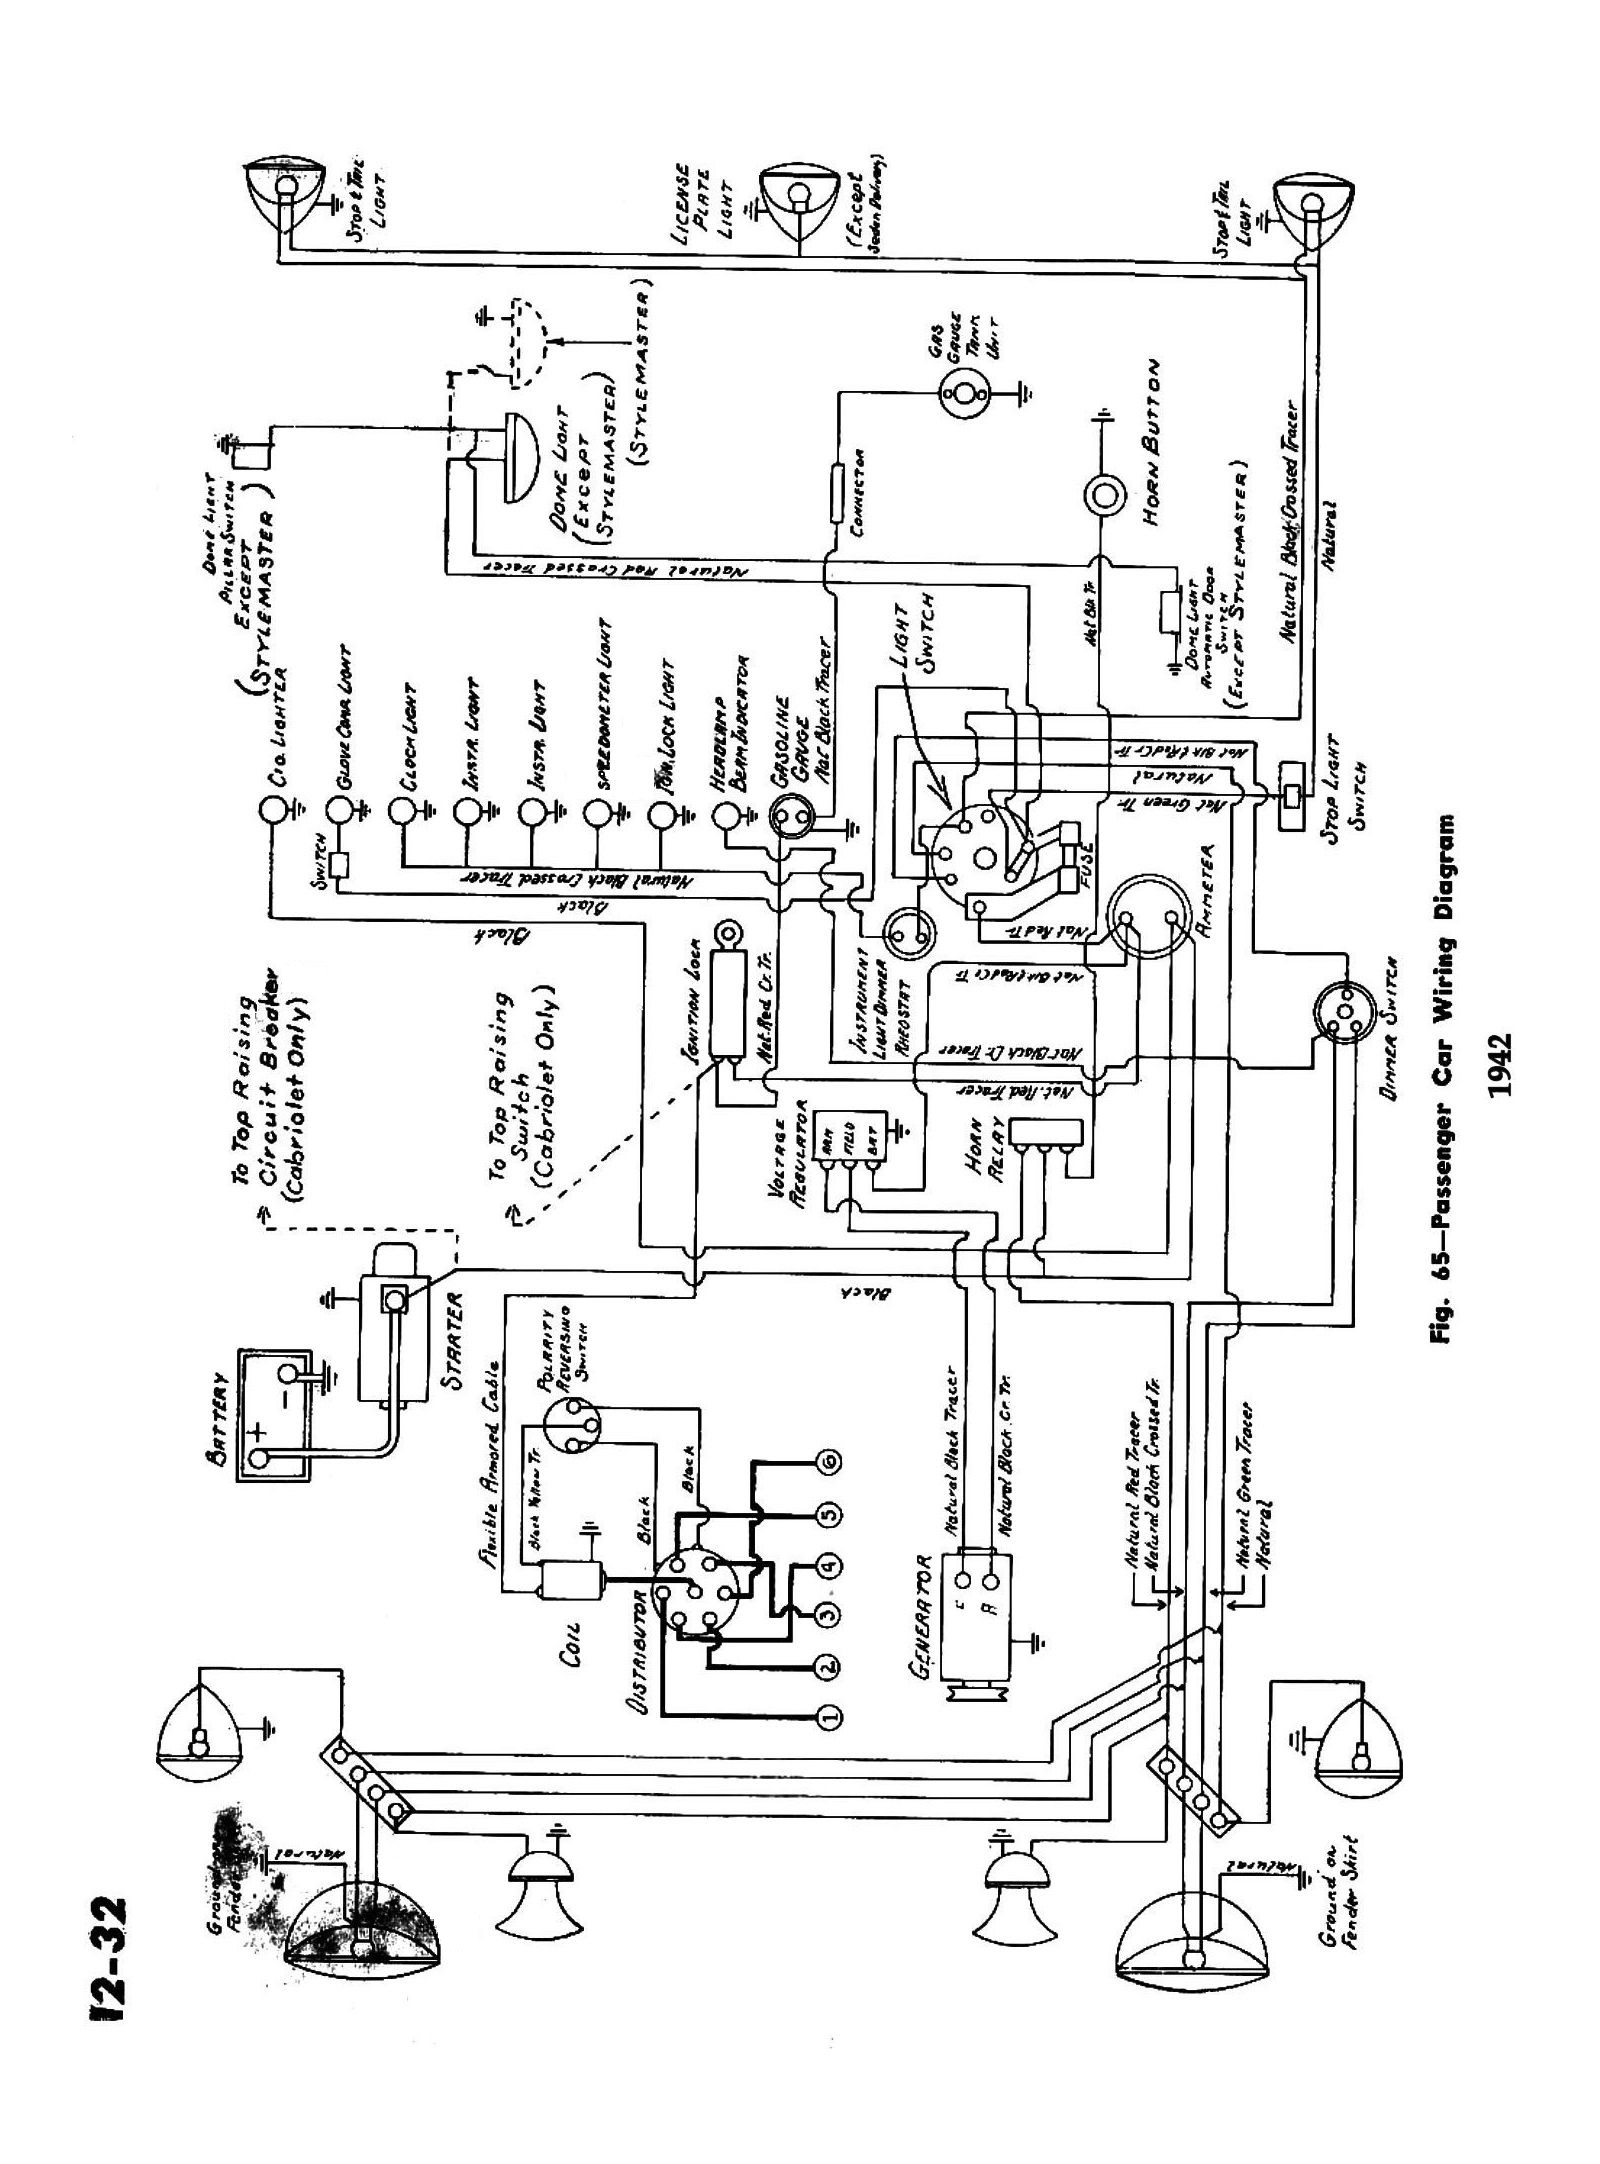 hight resolution of 50 chevy starter schematic diagram data schema exp 50 chevy starter schematic